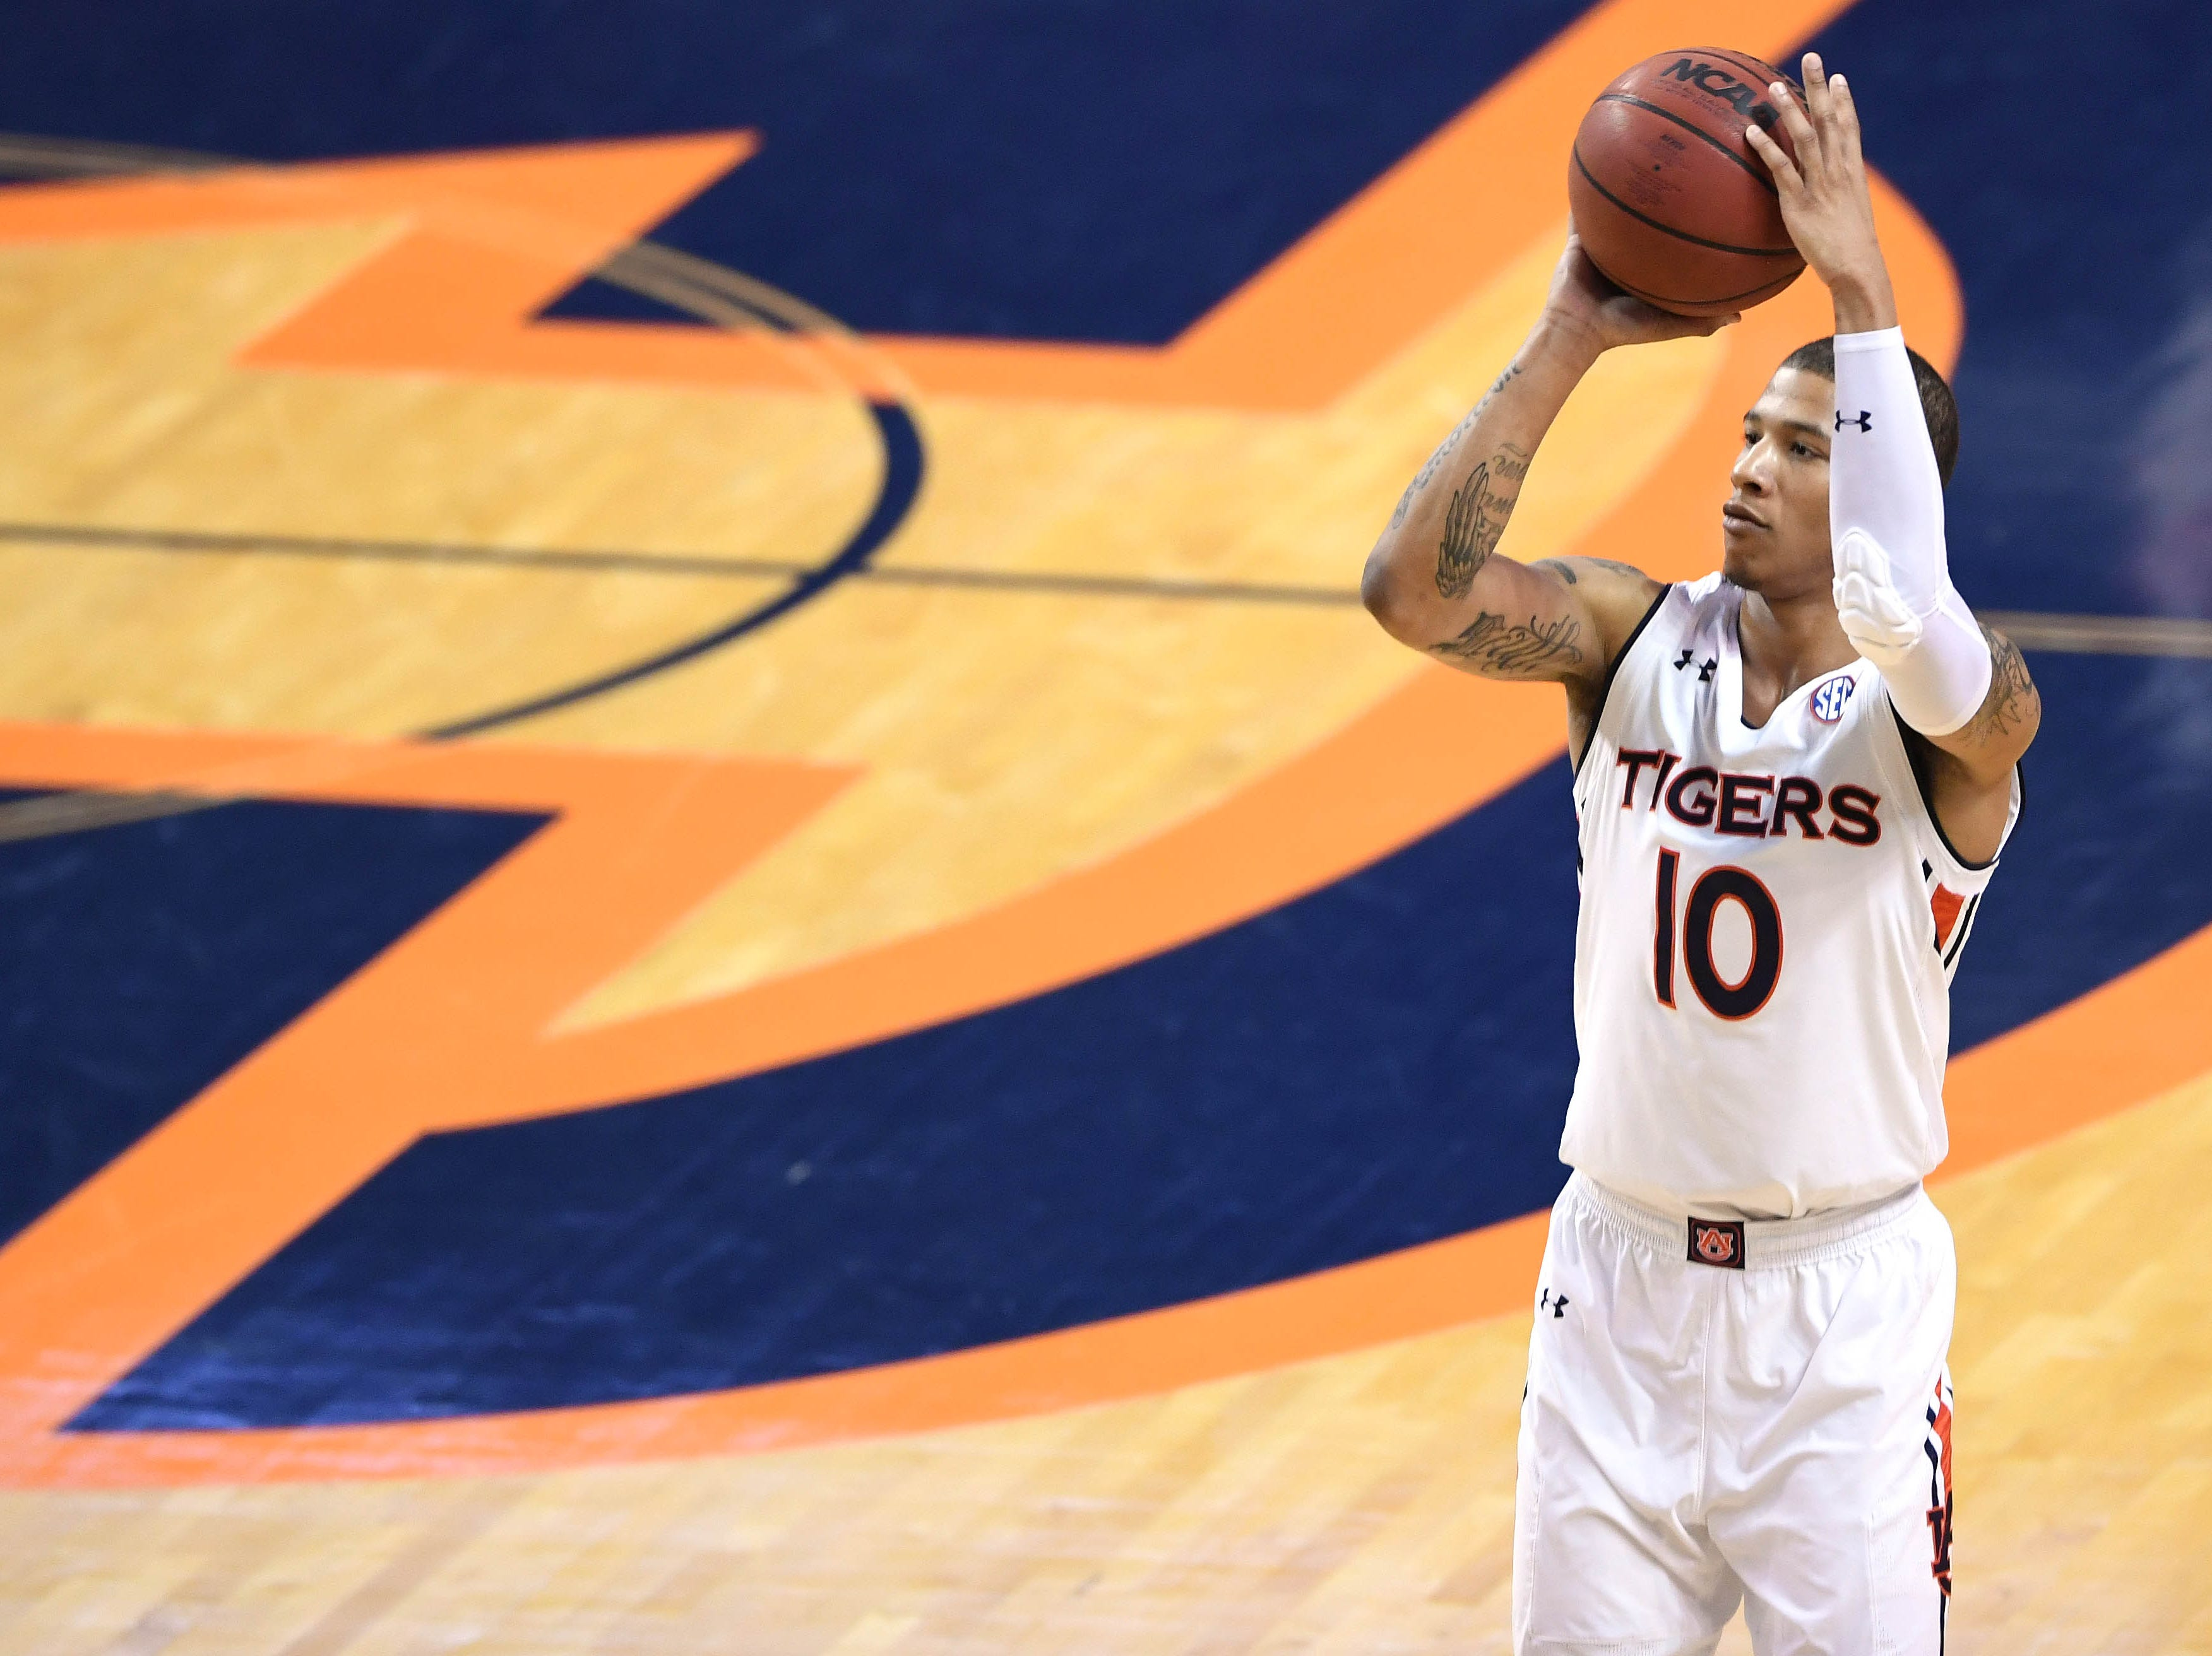 Dec 22, 2018; Auburn, AL, USA; Auburn Tigers guard Samir Doughty (10) shoots during the second half against the Murray State Racers at Auburn Arena. Mandatory Credit: Shanna Lockwood-USA TODAY Sports